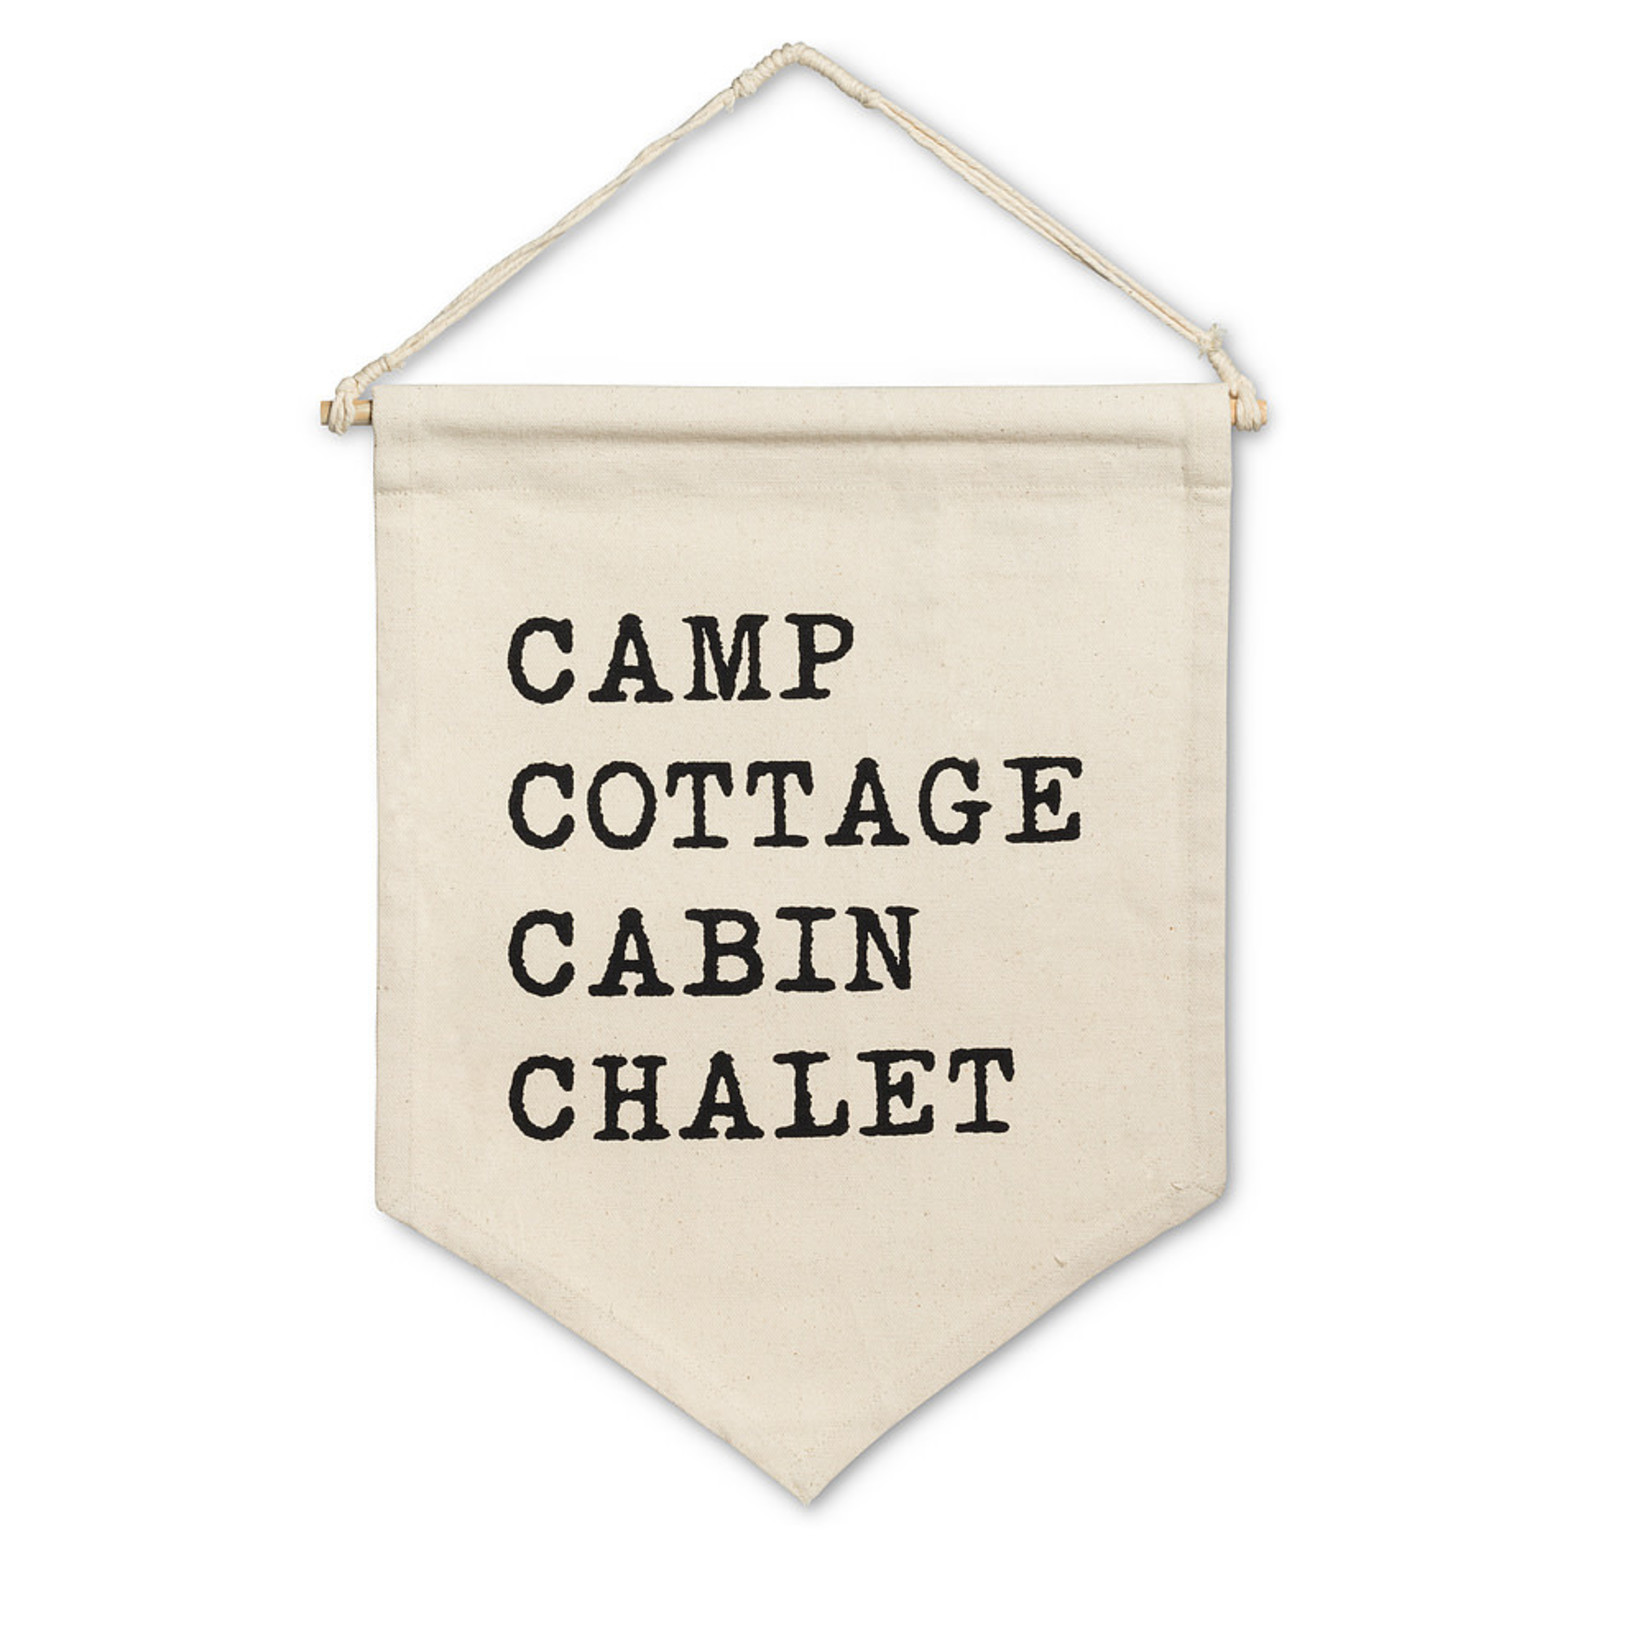 Abbott Collection Camp Cottage Wall Pennant